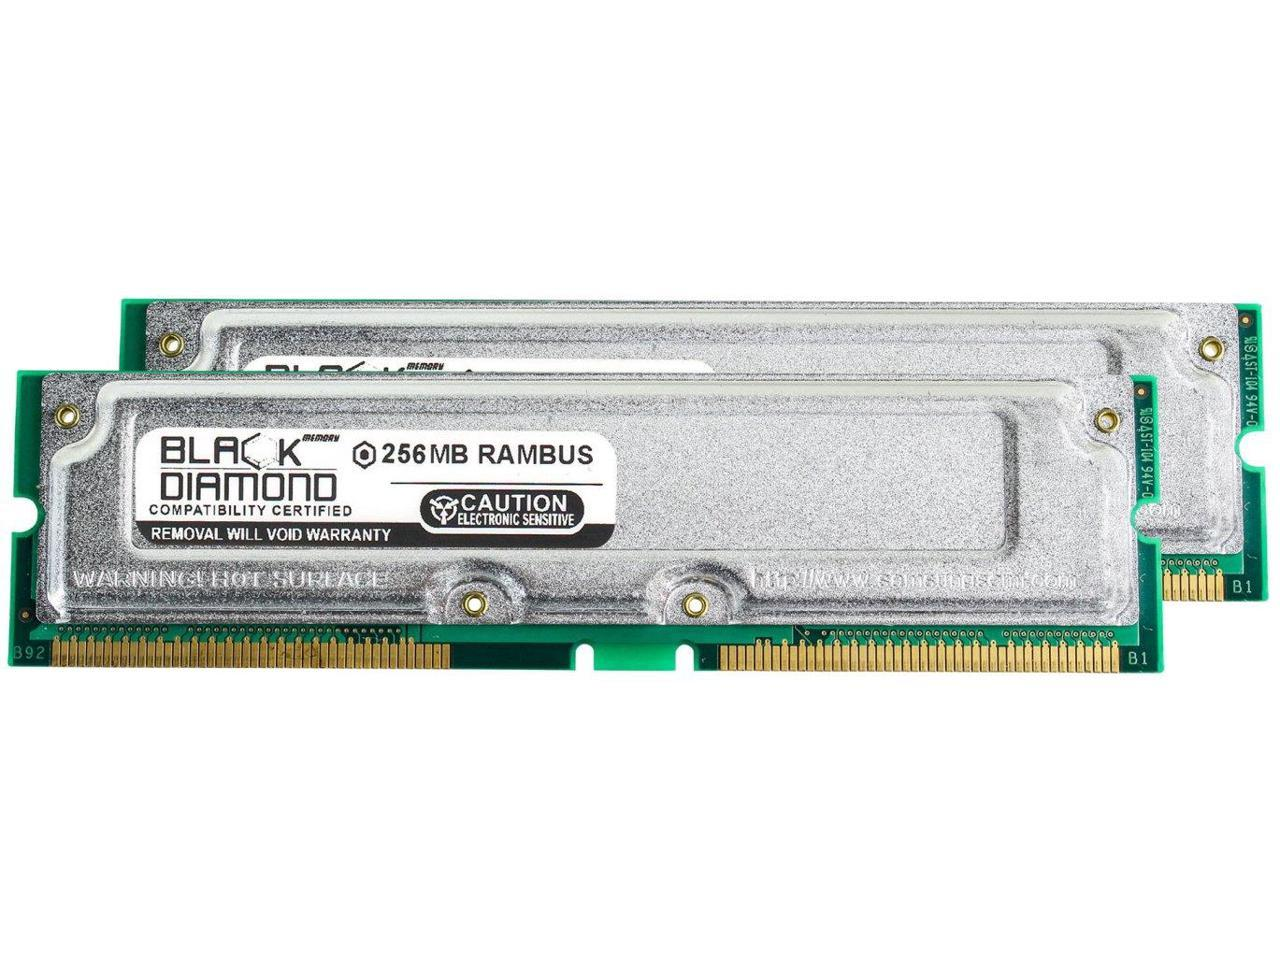 PC2100 512MB DDR-266 Memory RAM Upgrade for The Intel D Series D848PMB